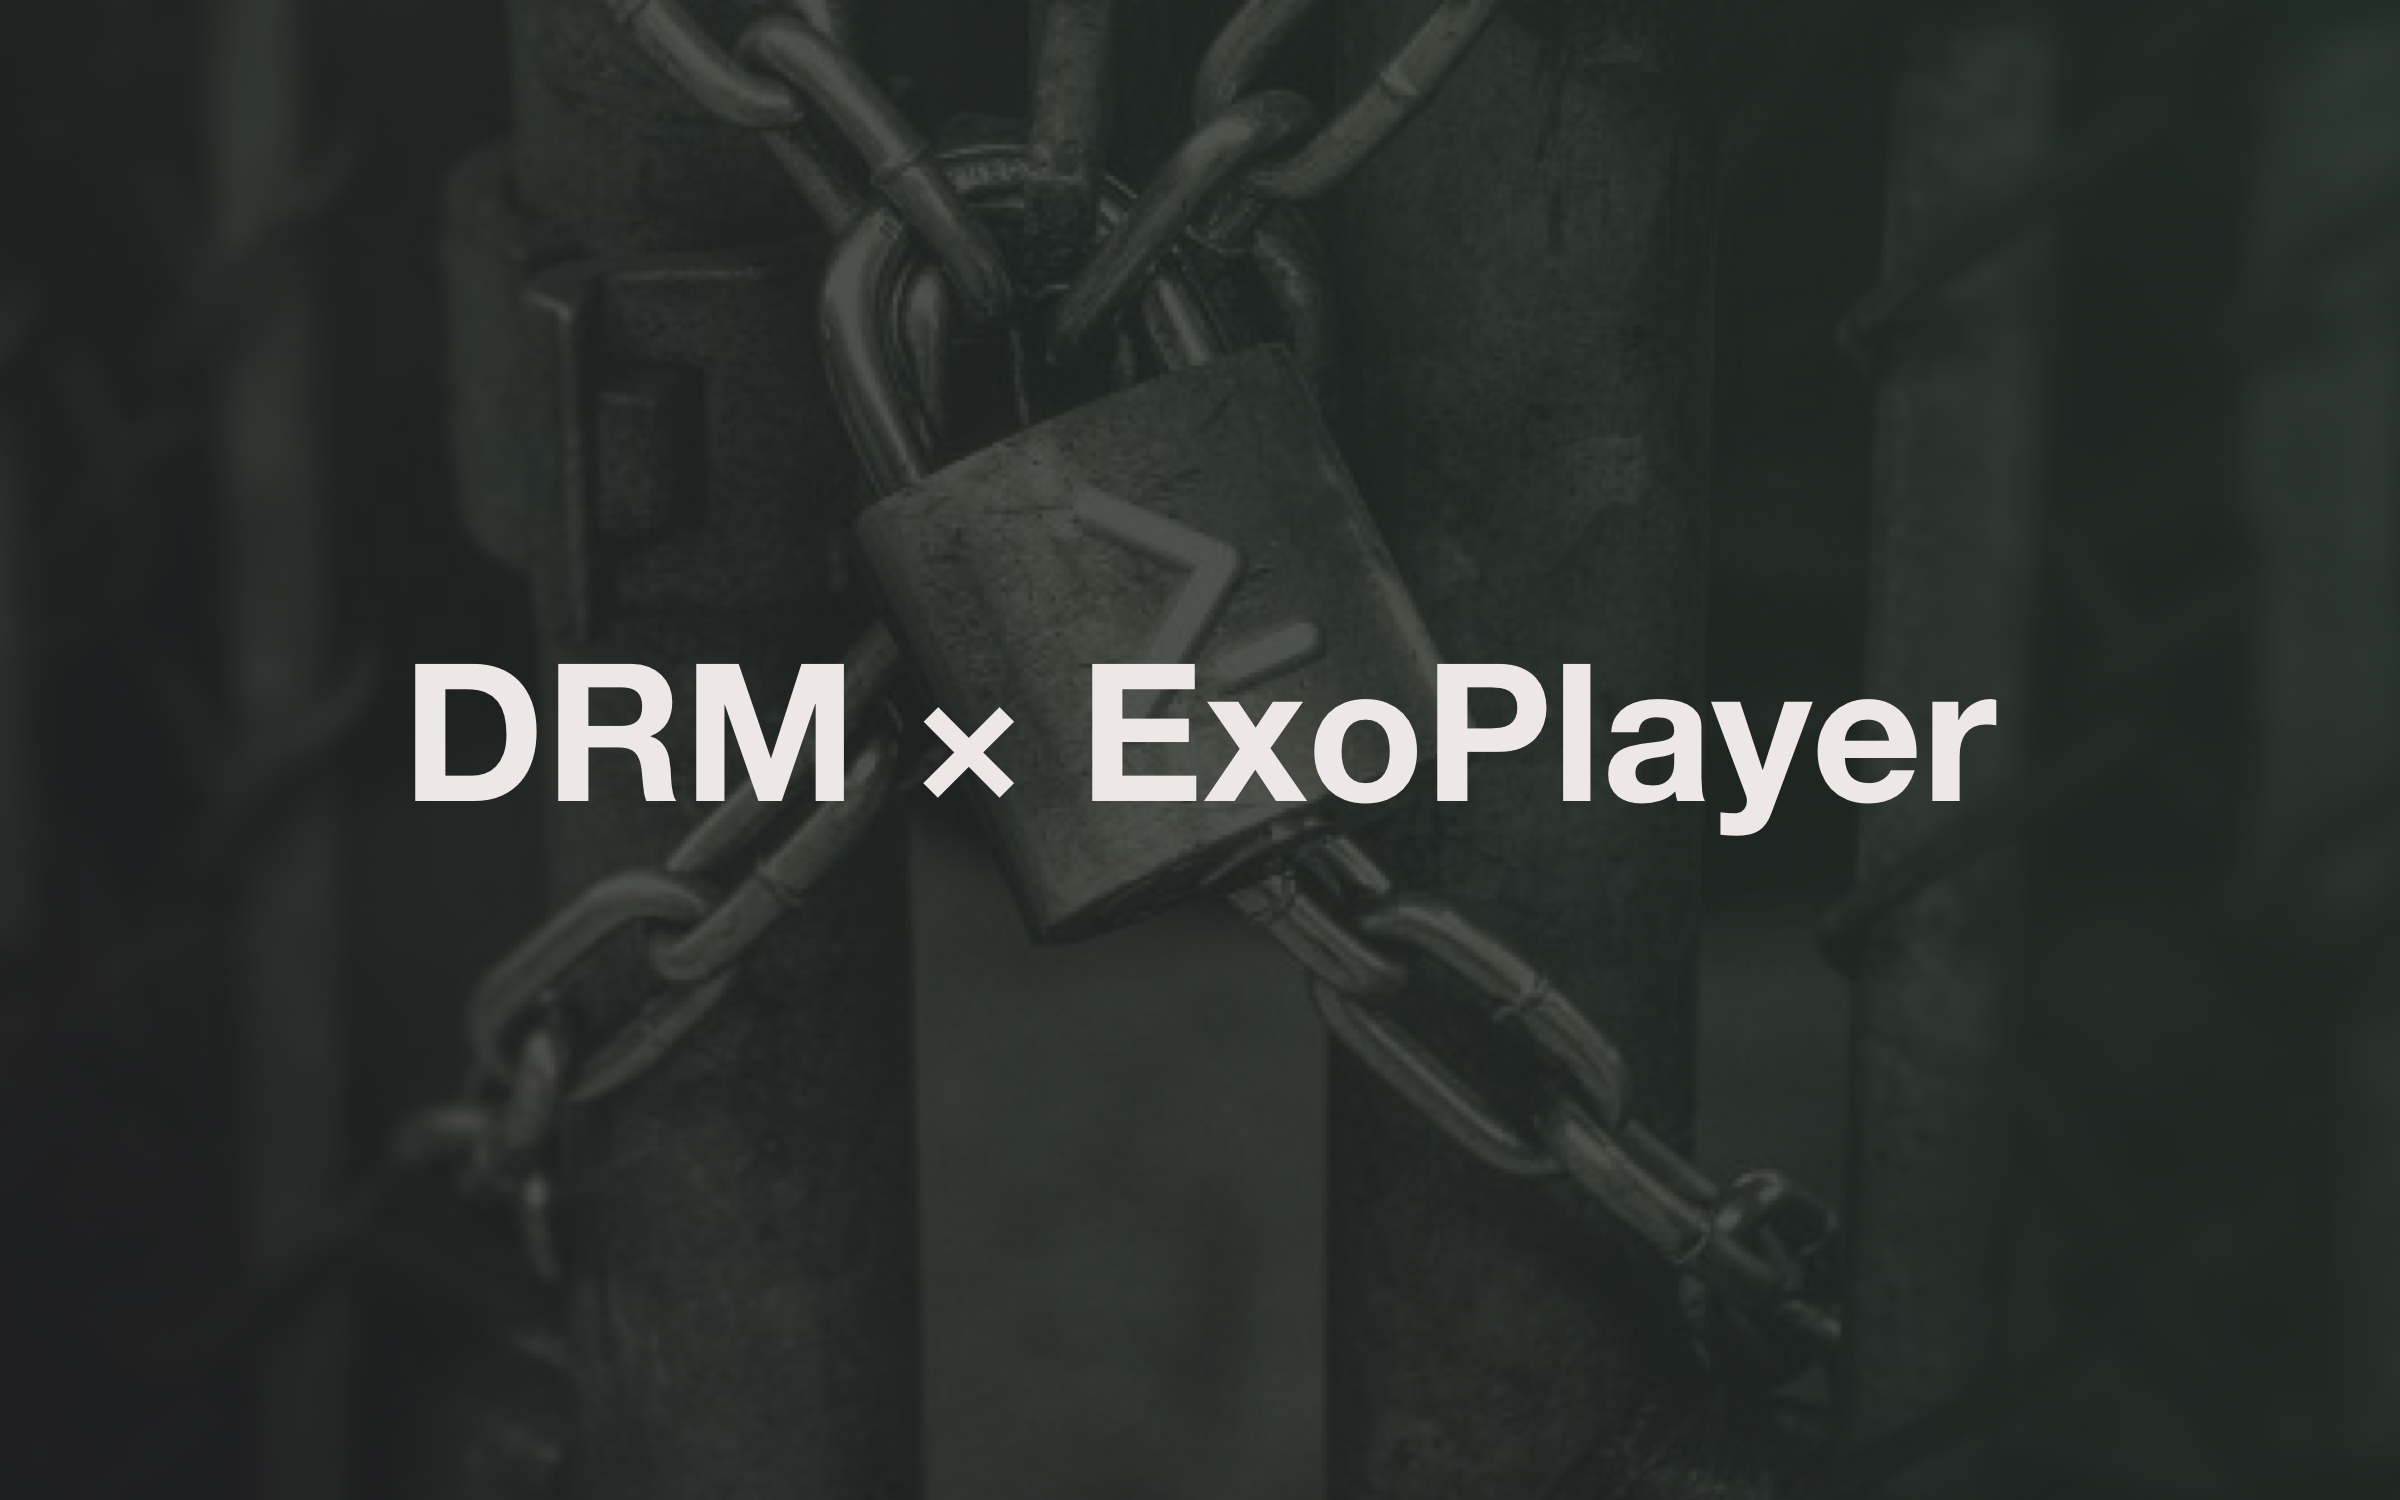 Play your own DRM content on ExoPlayer - Taku Semba - Medium